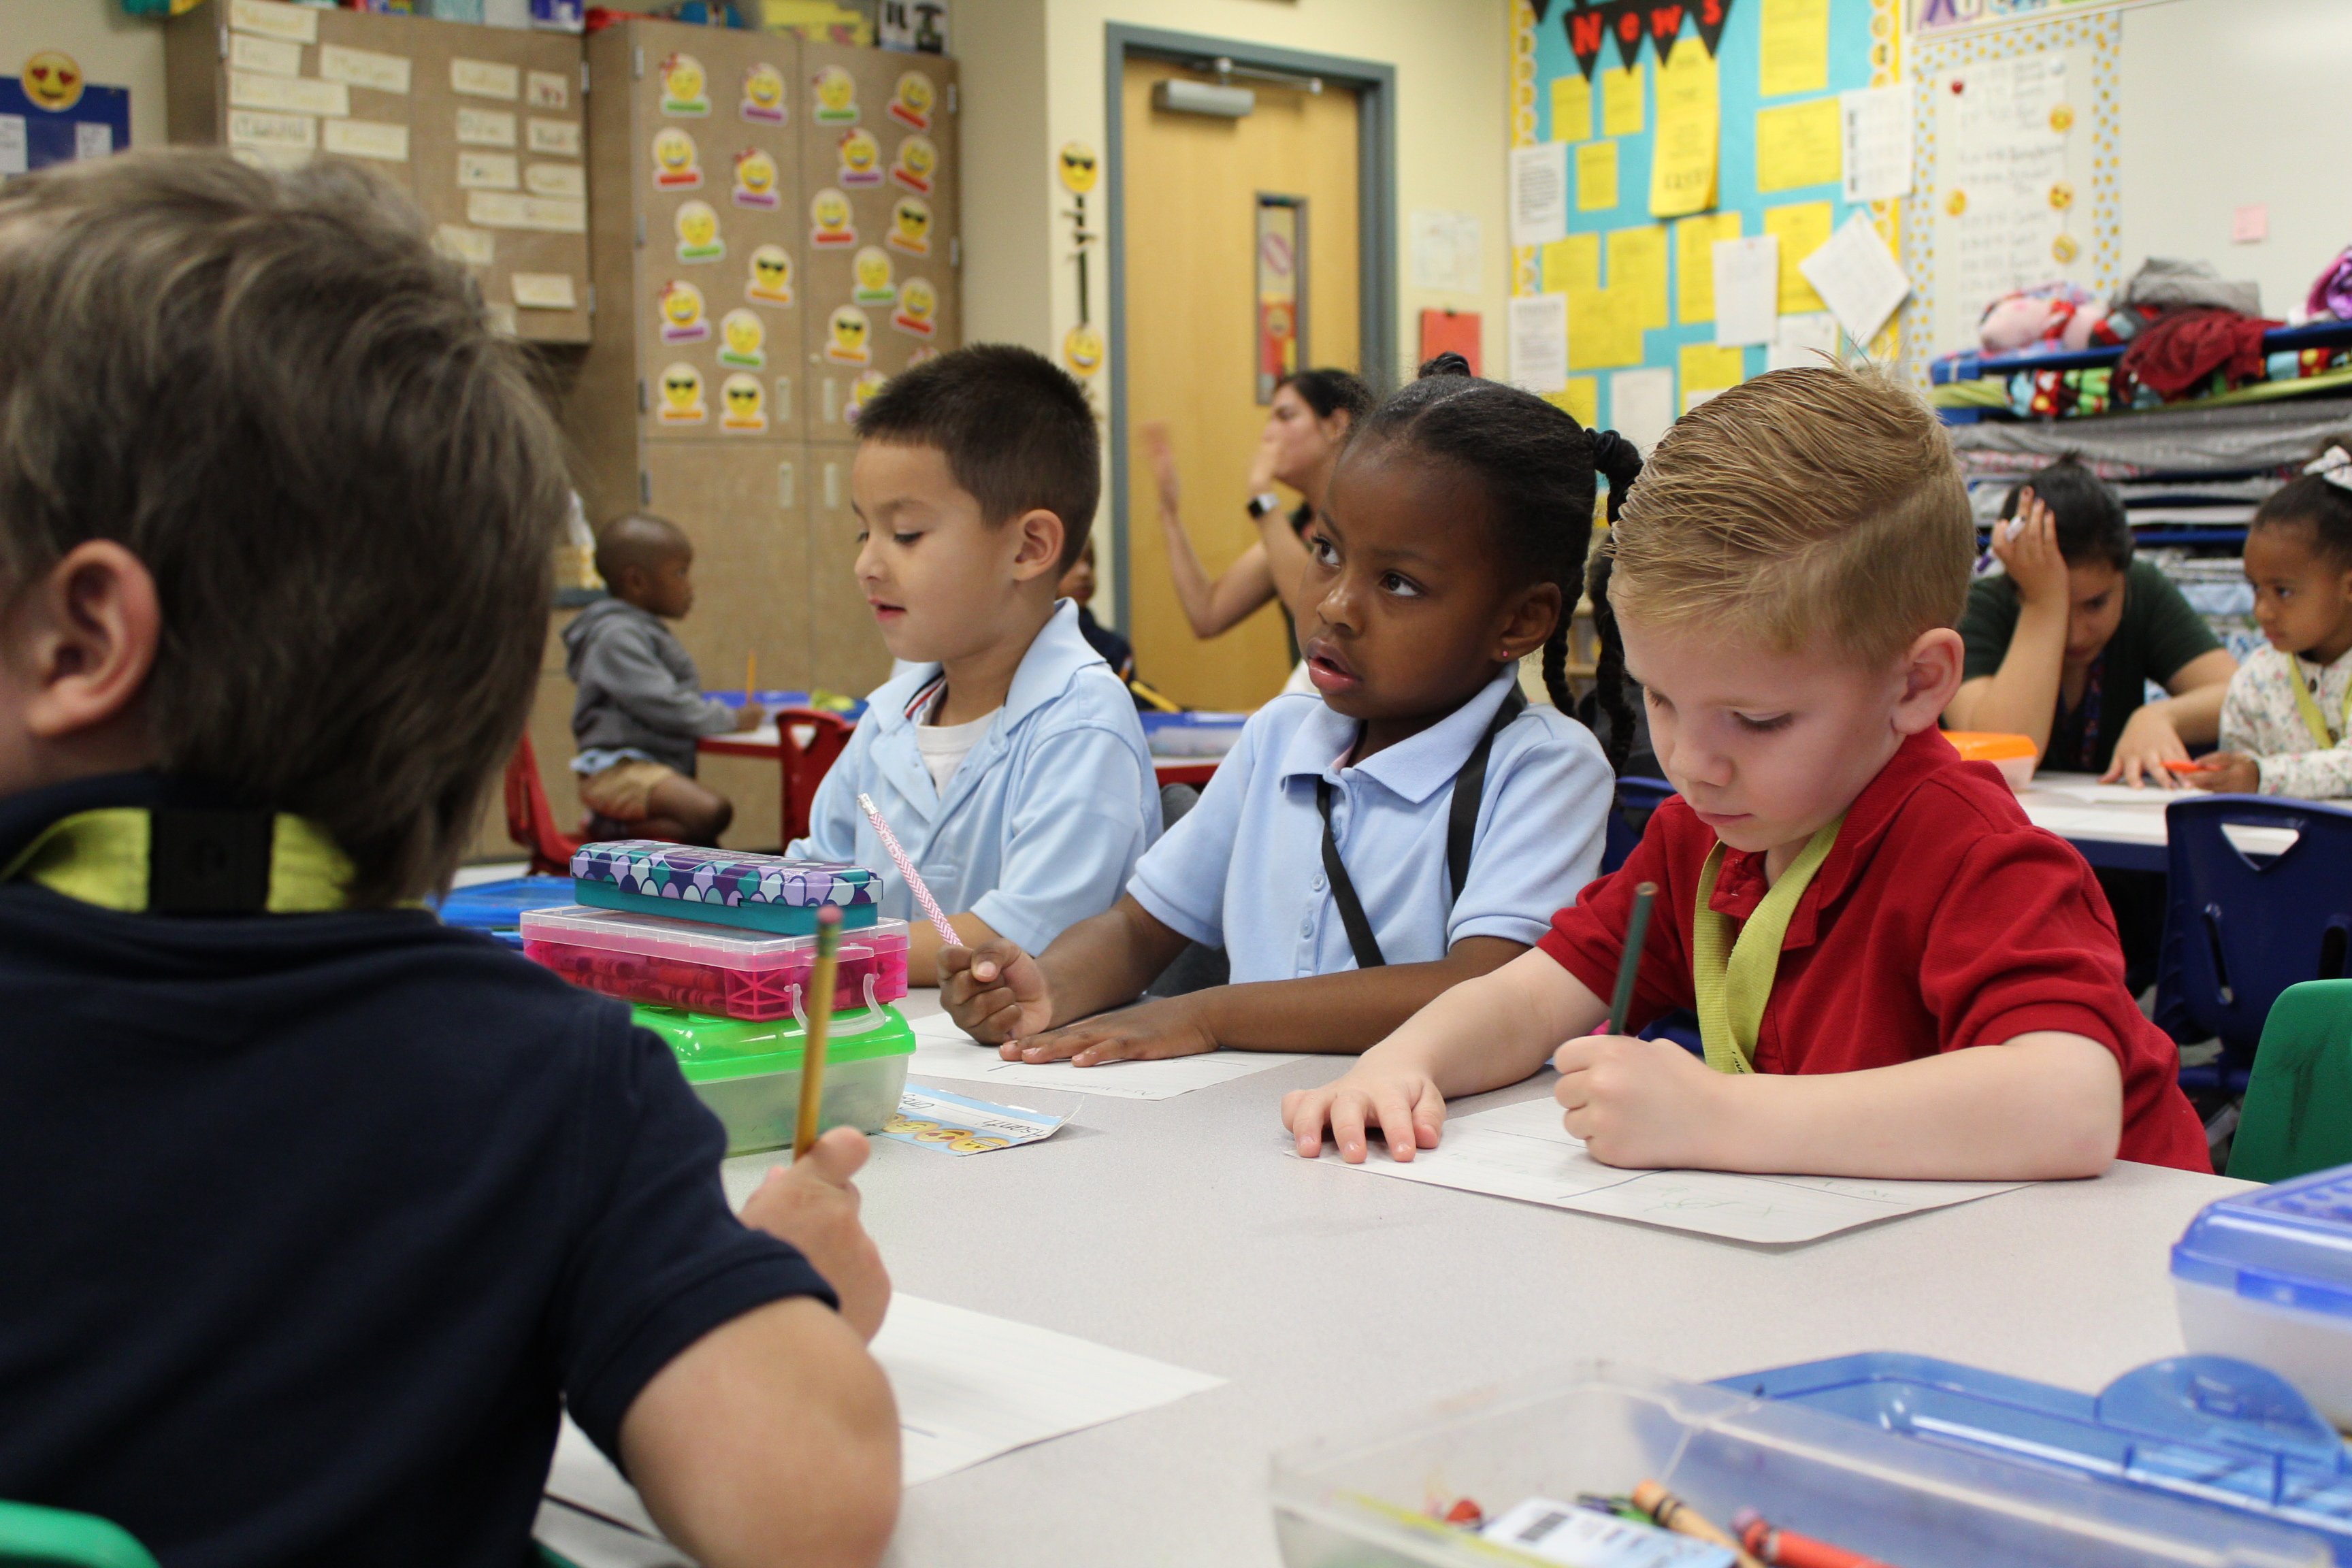 The Laveen Elementary School District is expanding its preschool program with a third location, which will open in Fall 2019 at Vista del Sur. (Photo Courtesy of Laveen Elementary School District)